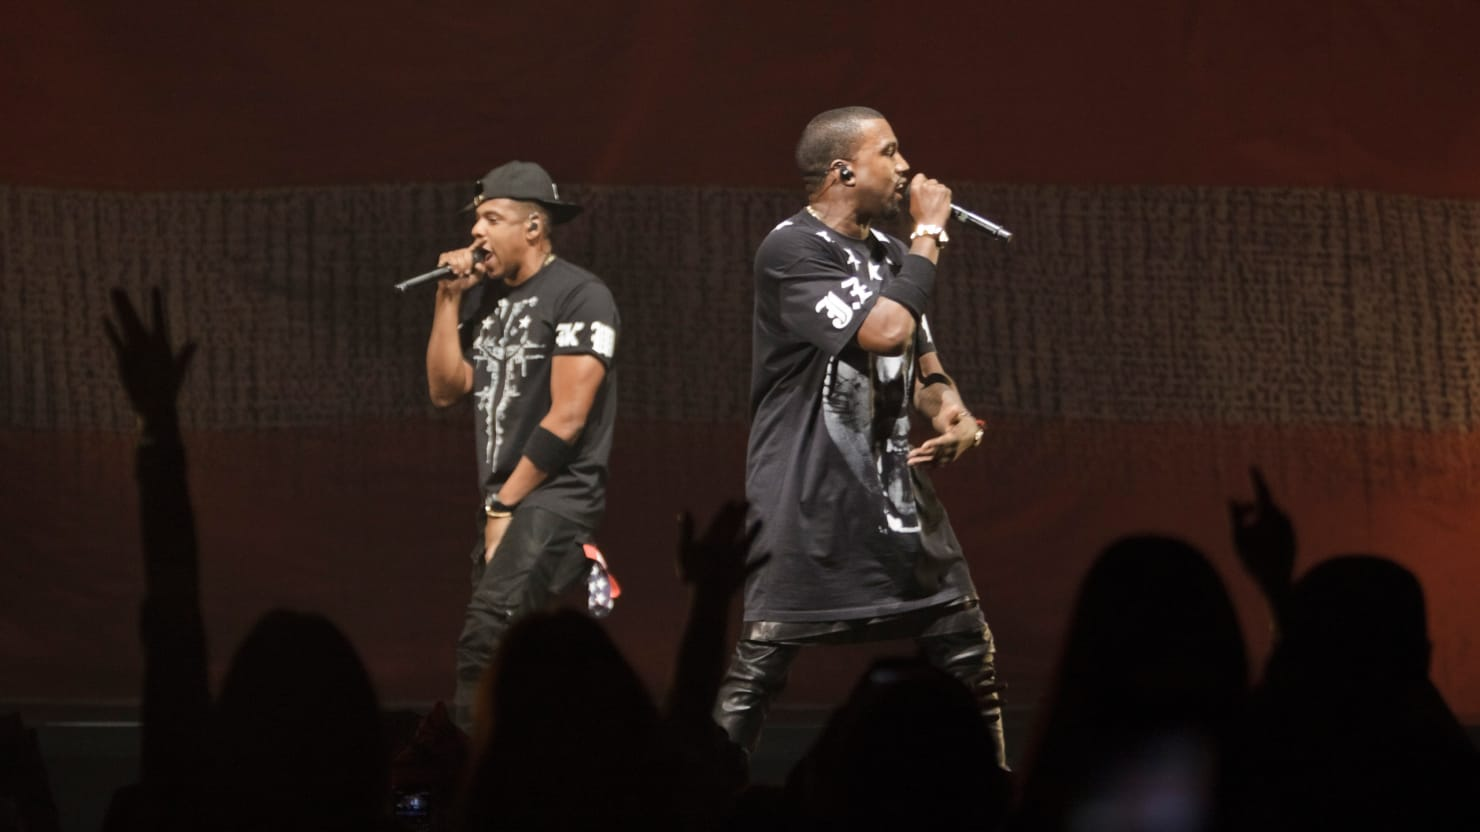 Jay Z and Kanye West Deliver the Mother of All Performances at SXSW